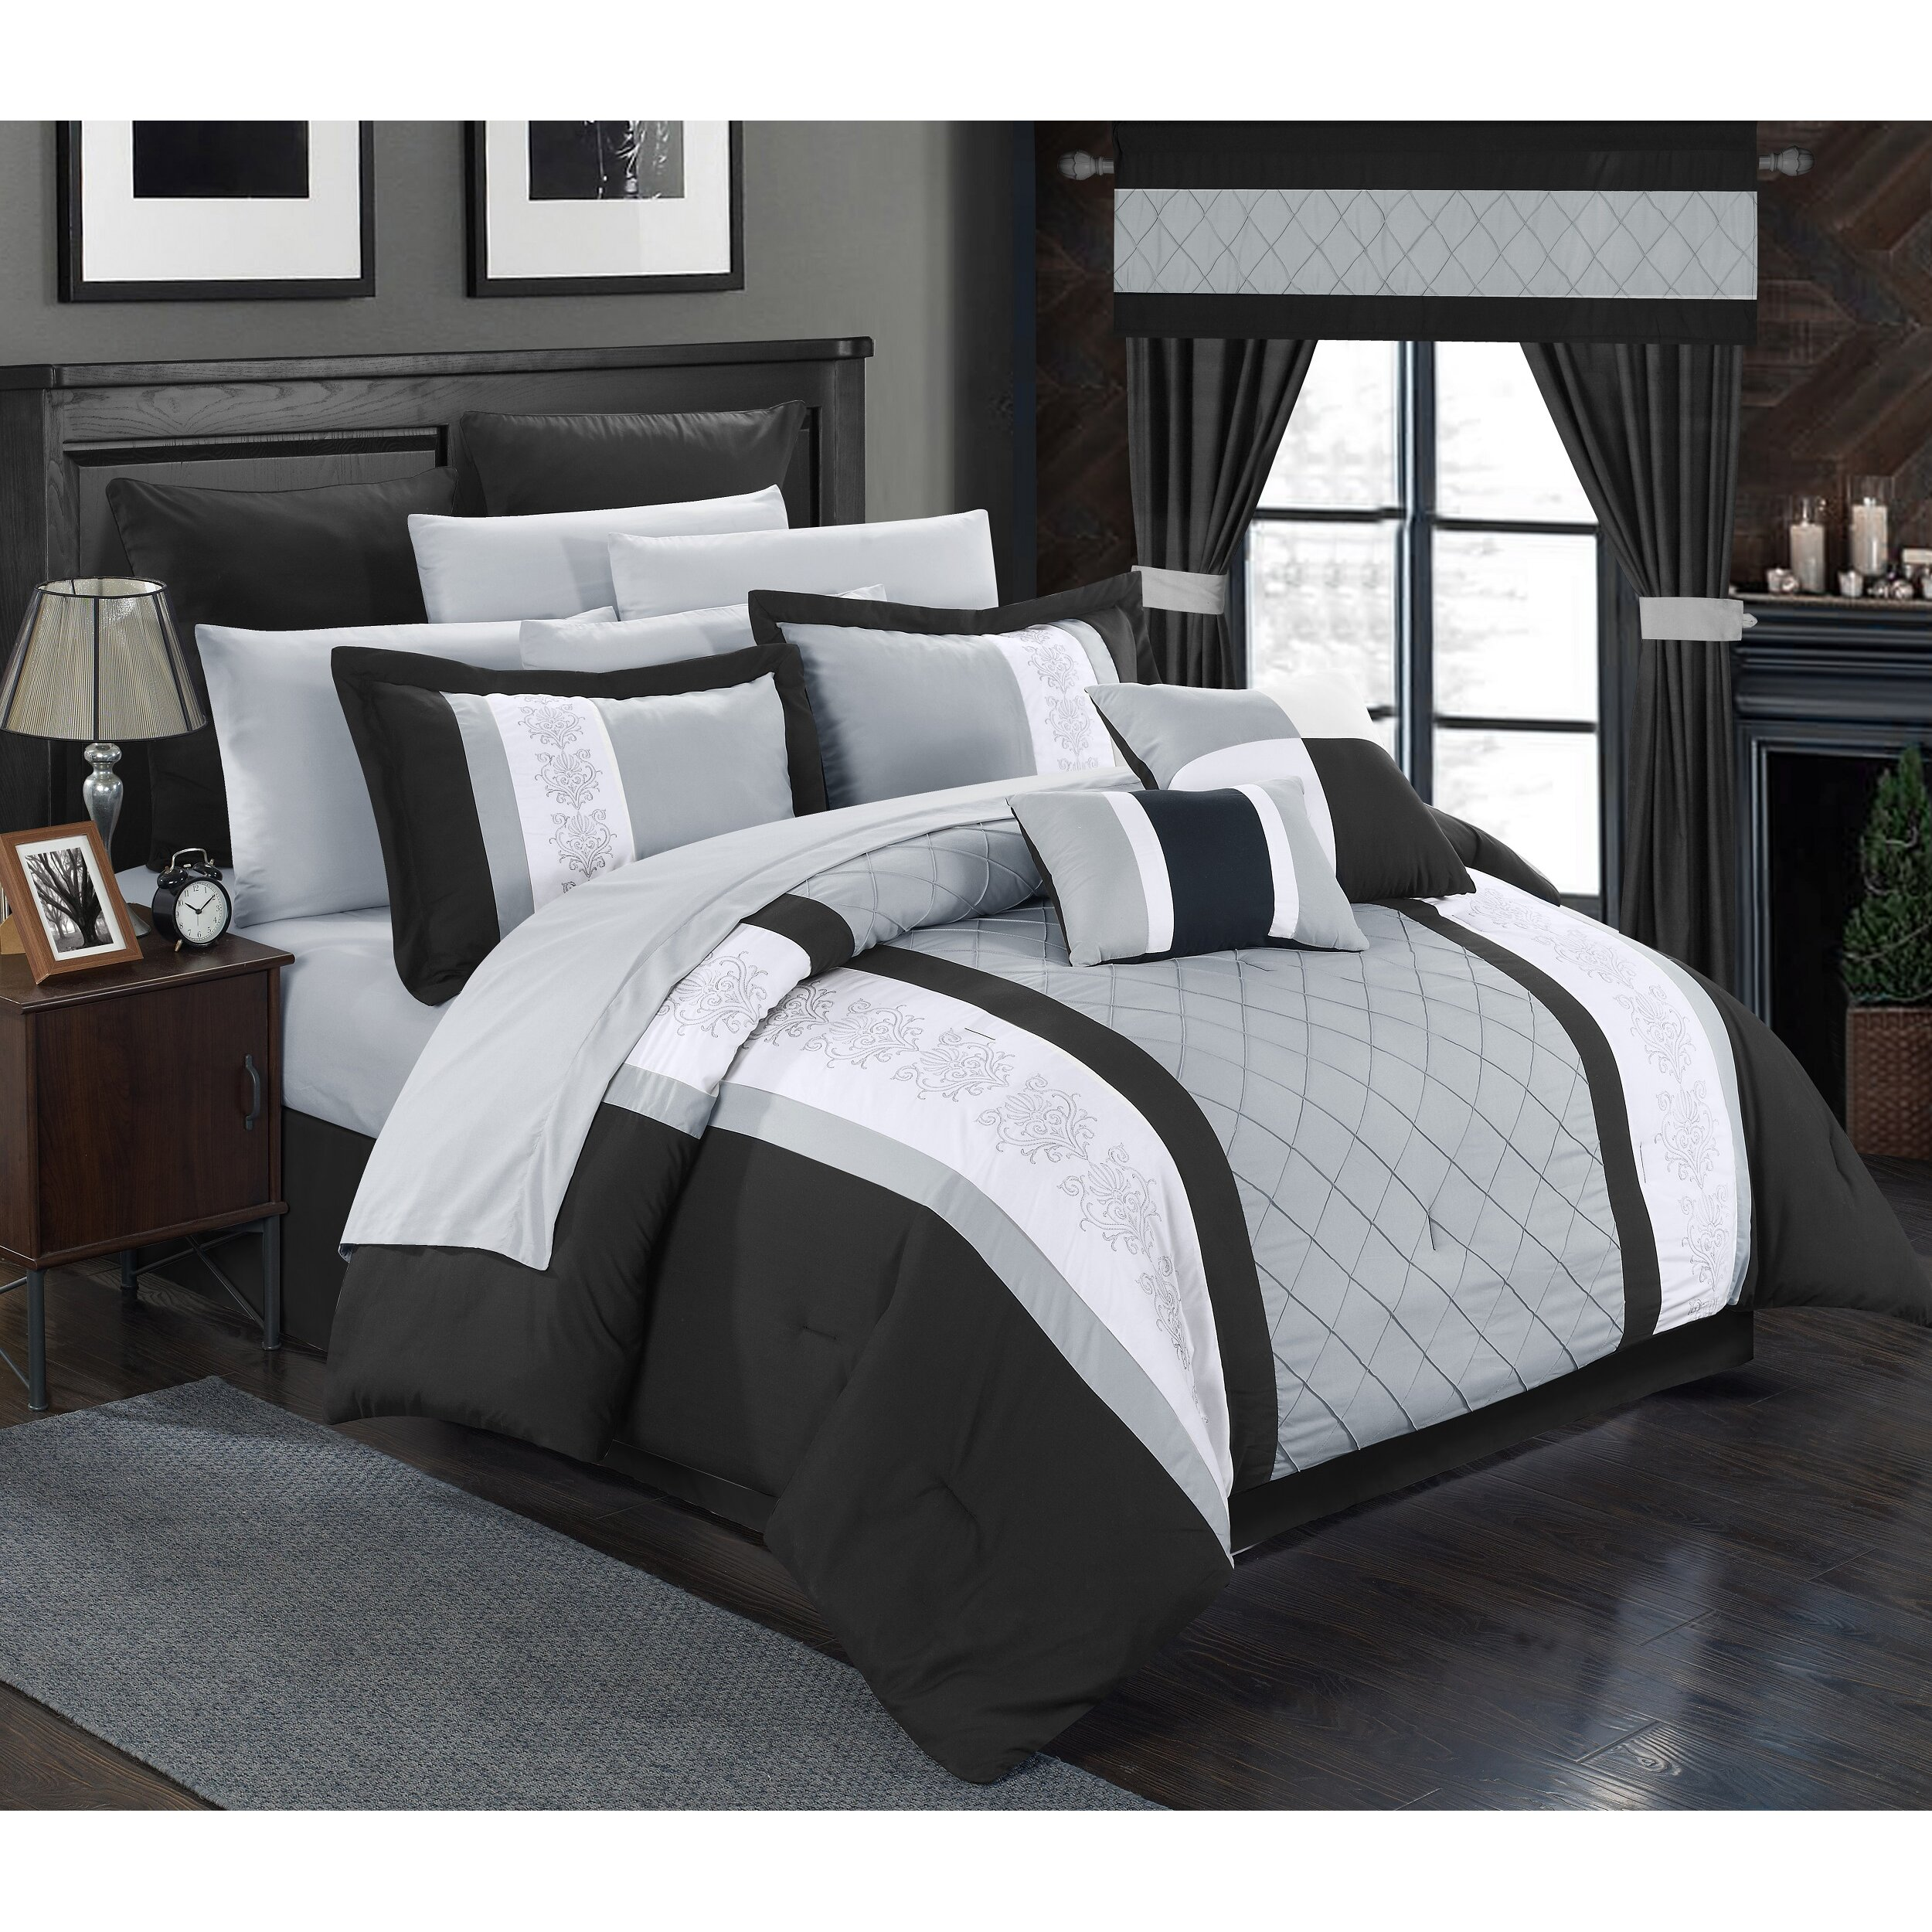 chic home danielle 24 piece comforter set reviews. Black Bedroom Furniture Sets. Home Design Ideas